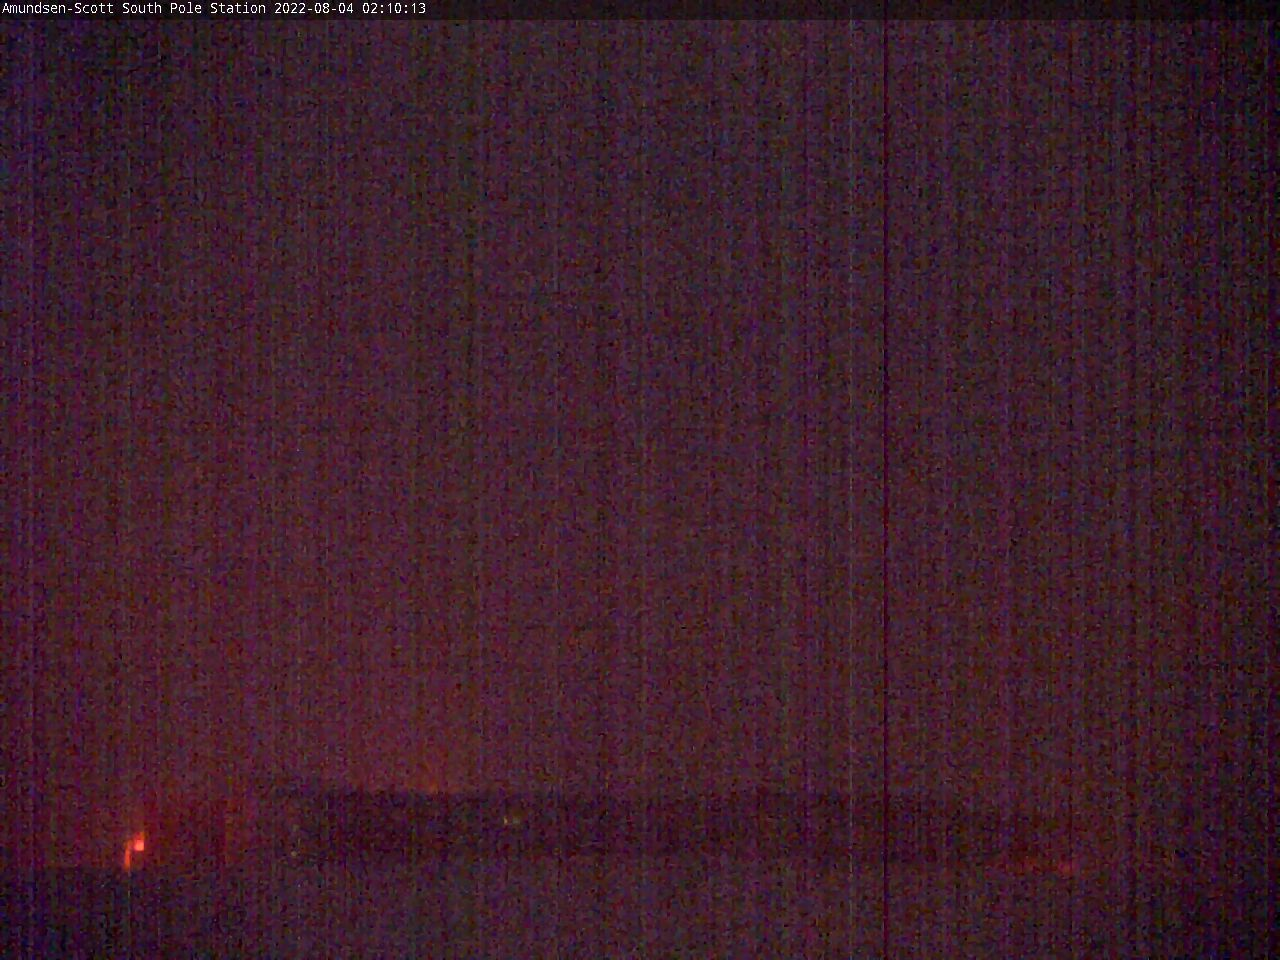 South Pole Station - Amundsen-Scott South Pole Station Webcam